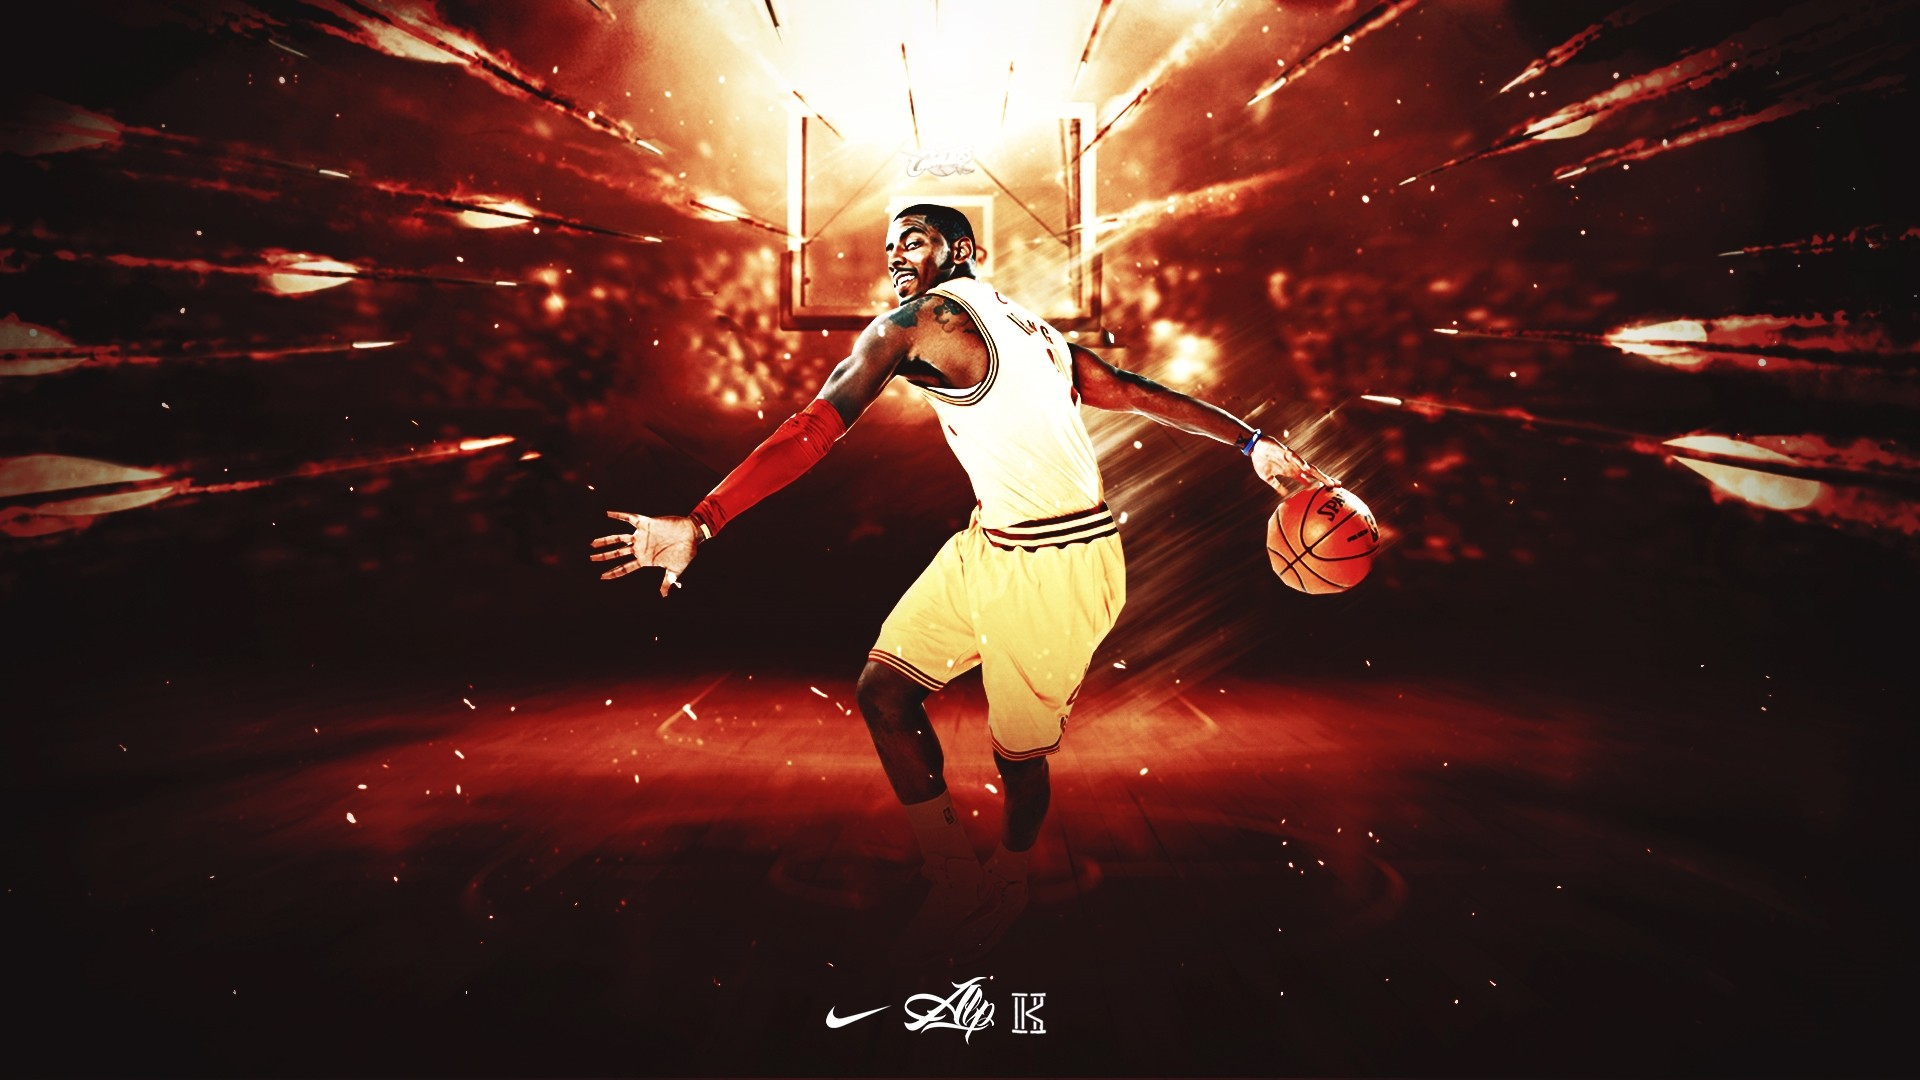 Kyrie Irving Image